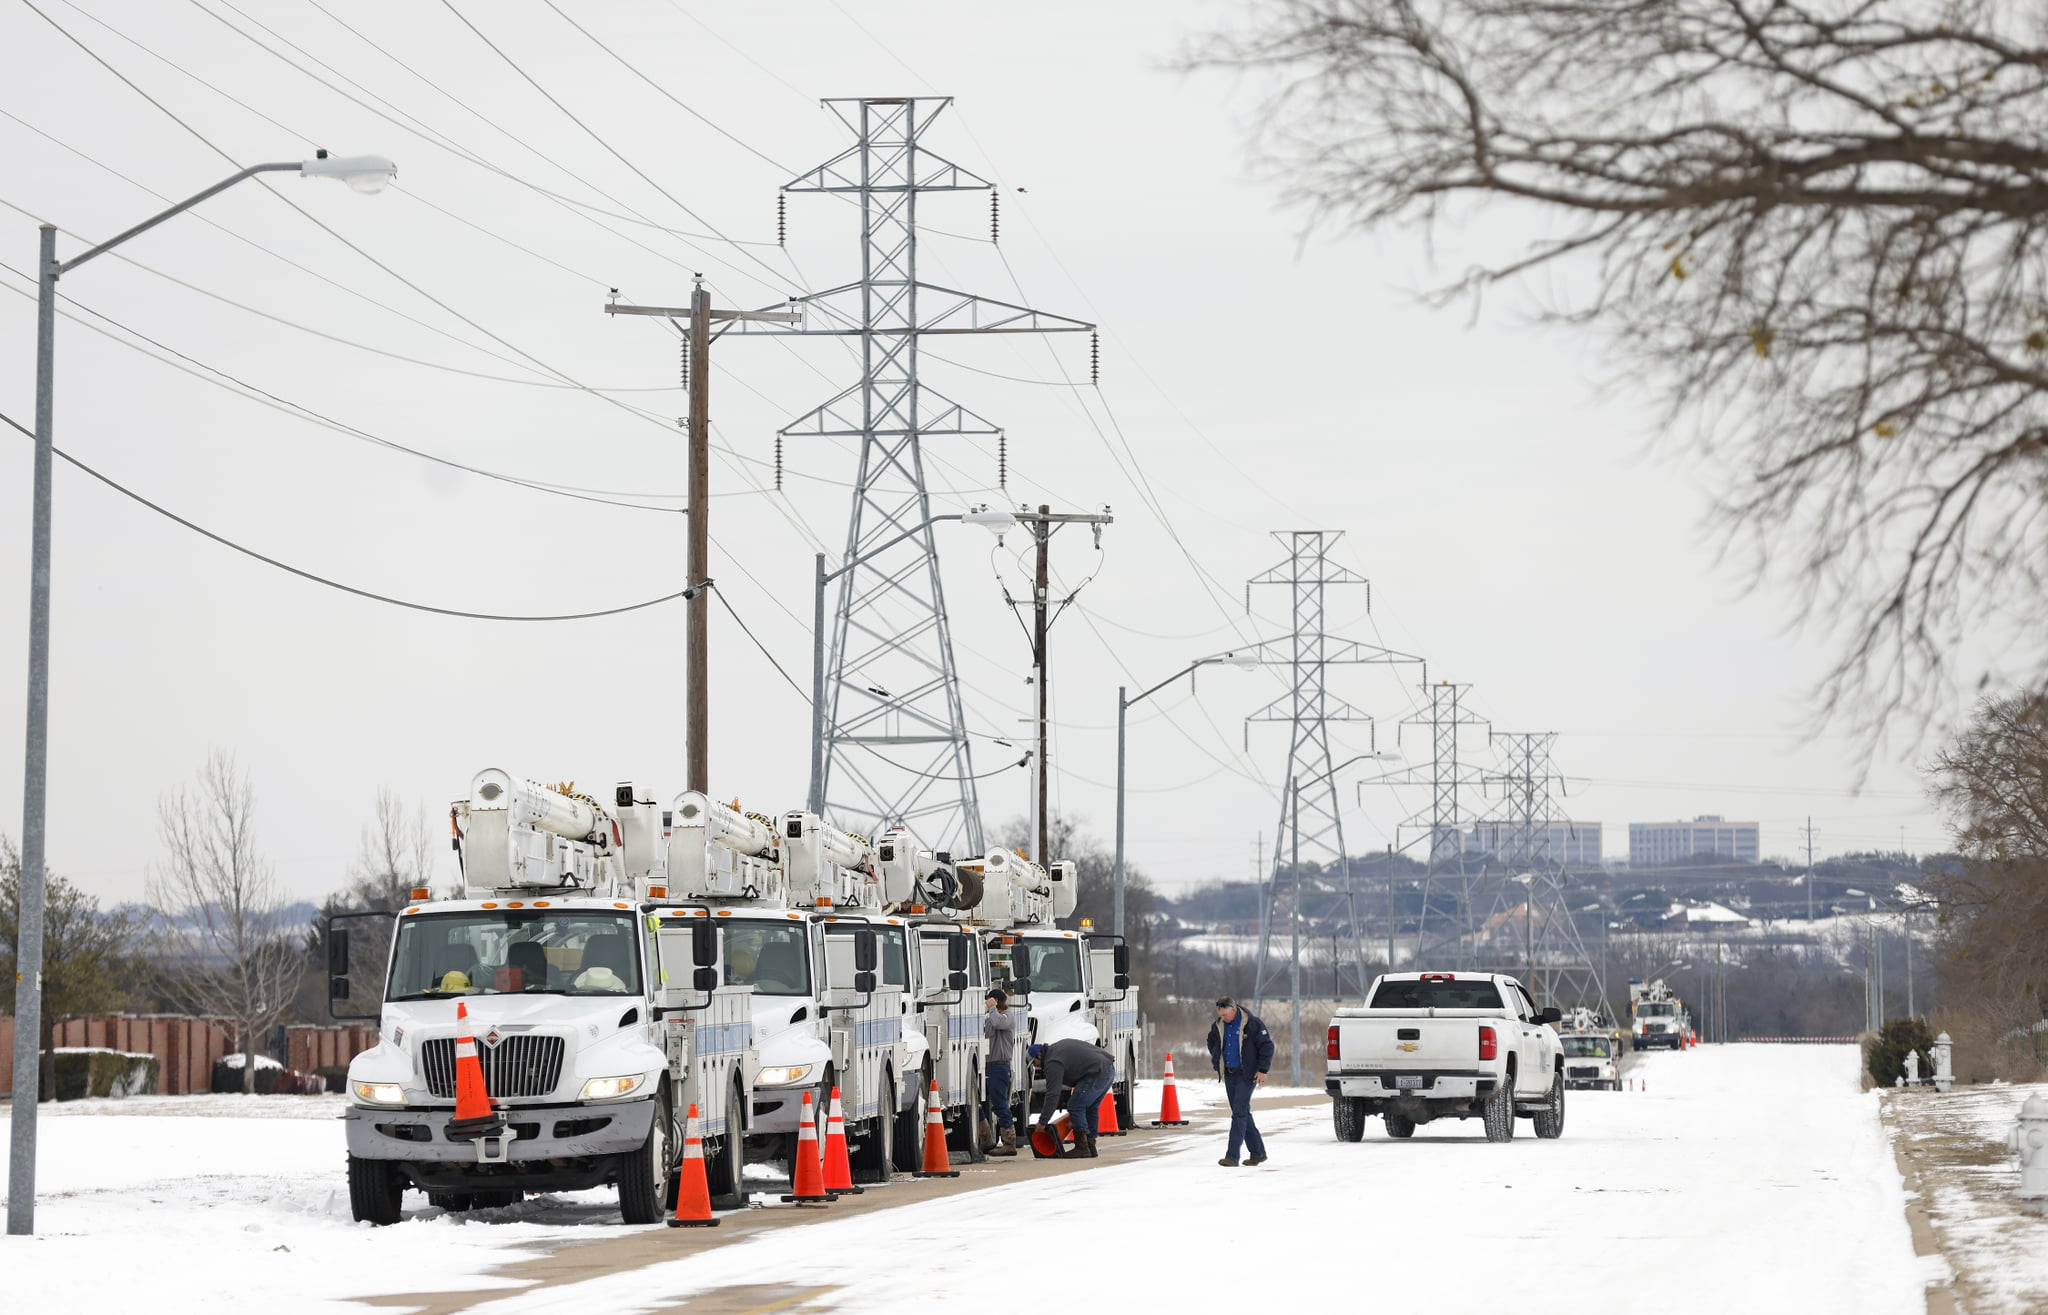 FORT WORTH, TX - FEBRUARY 16: Pike Electric service trucks line up after a snow storm on February 16, 2021 in Fort Worth, Texas. Winter storm Uri has brought historic cold weather and power outages to Texas as storms have swept across 26 states with a mix of freezing temperatures and precipitation. (Photo by Ron Jenkins/Getty Images)